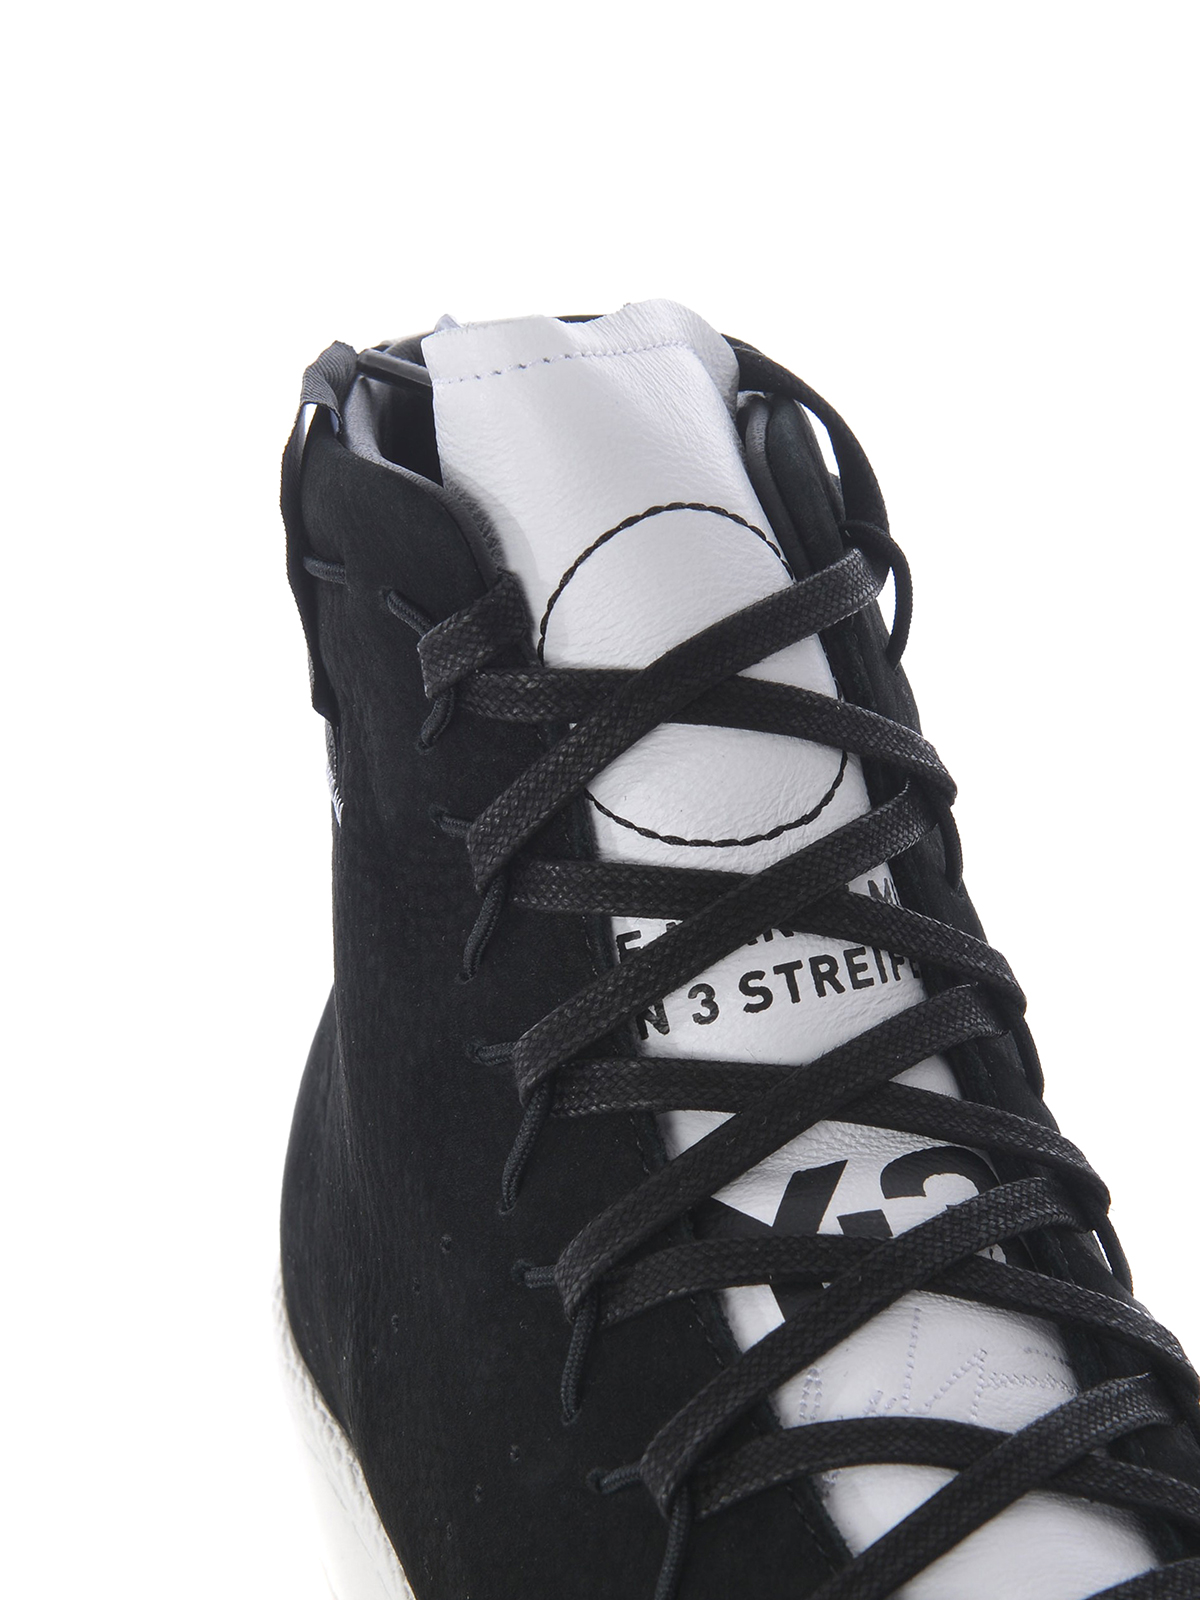 0bdc0f6c0 Y3 - Super High sneakers - trainers - CG6233